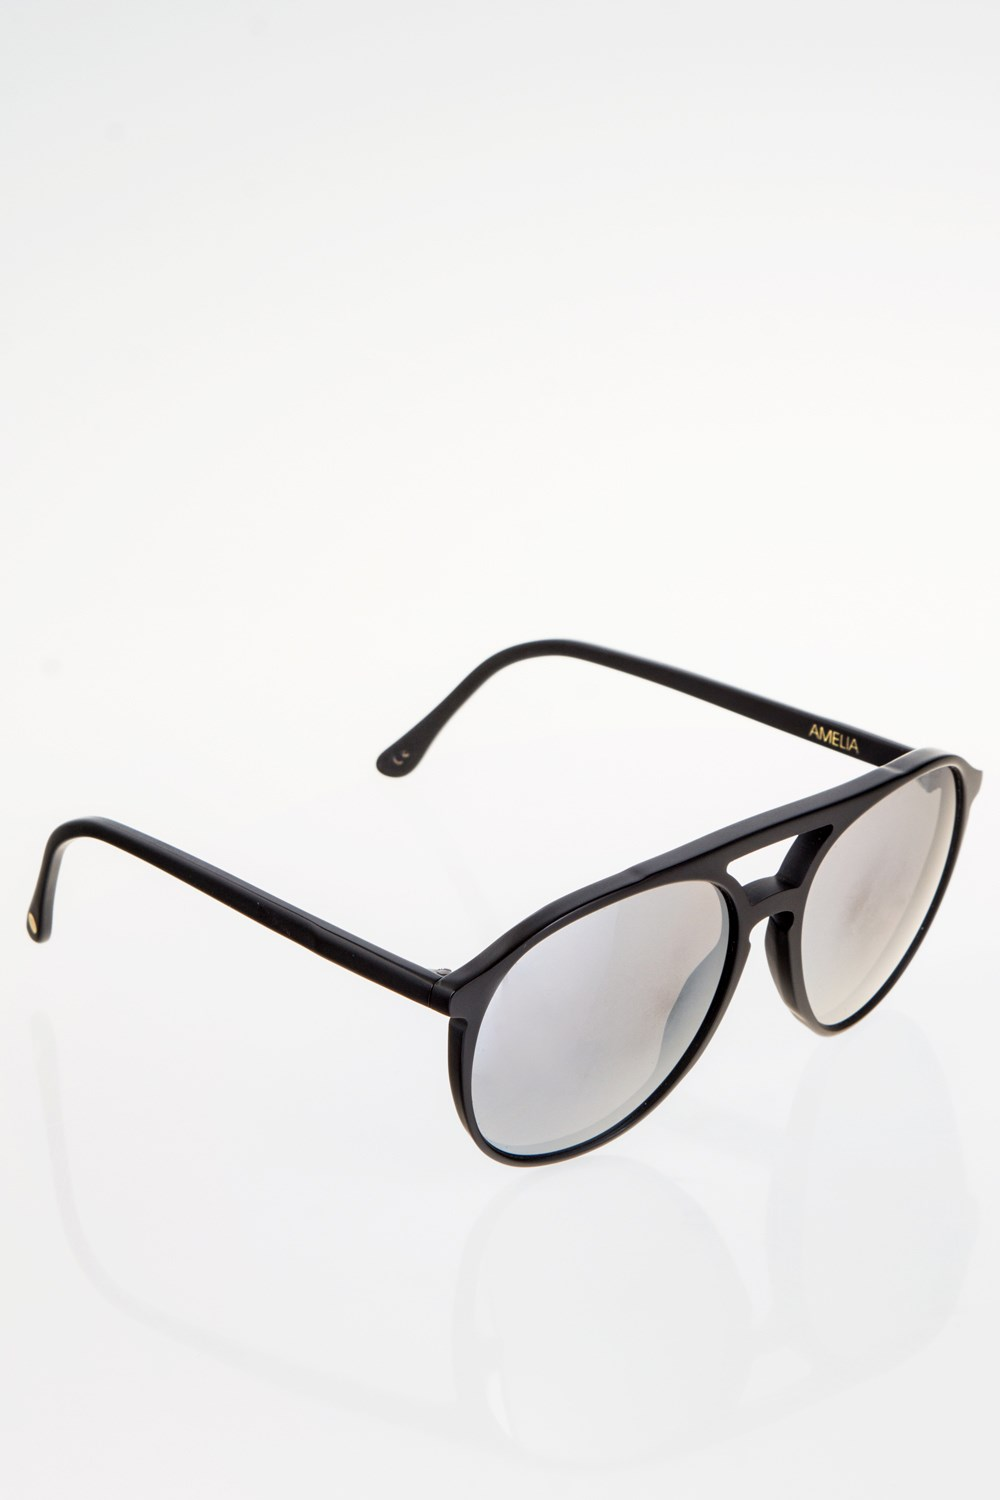 d6a22c39474 Amelia Black Acetate Aviator Sunglasses